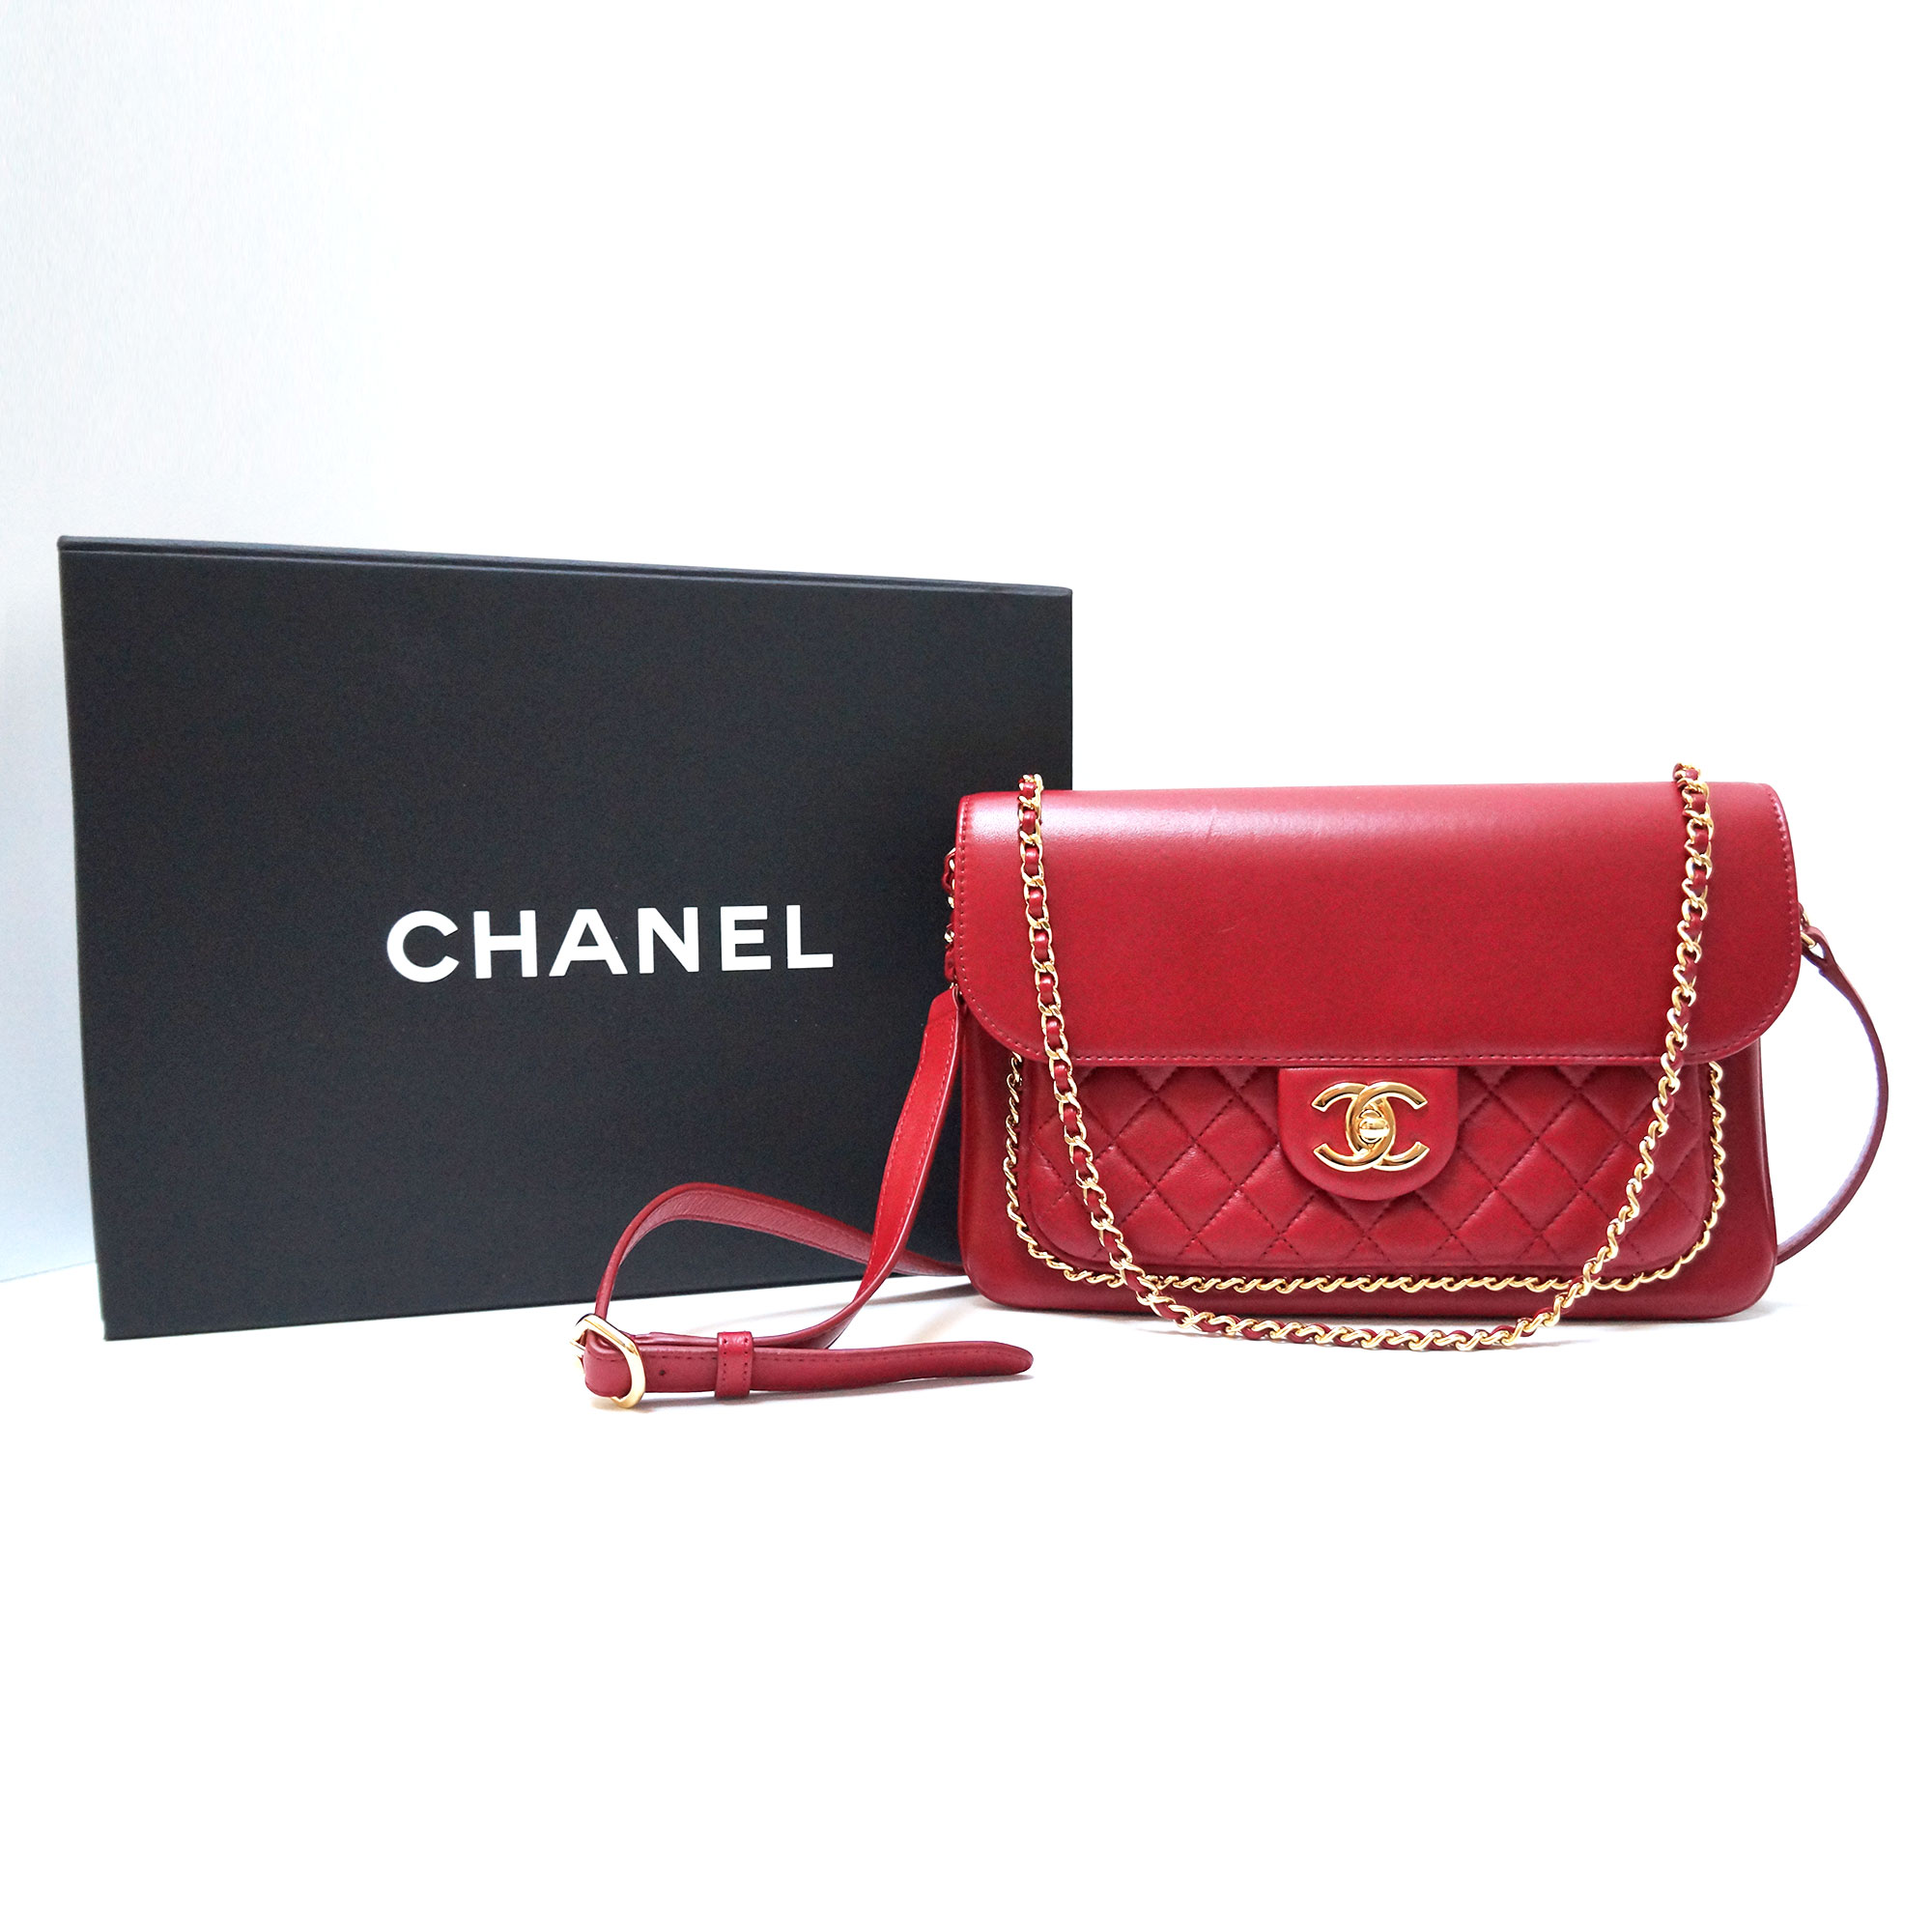 Chanel Unchained Flap Bag